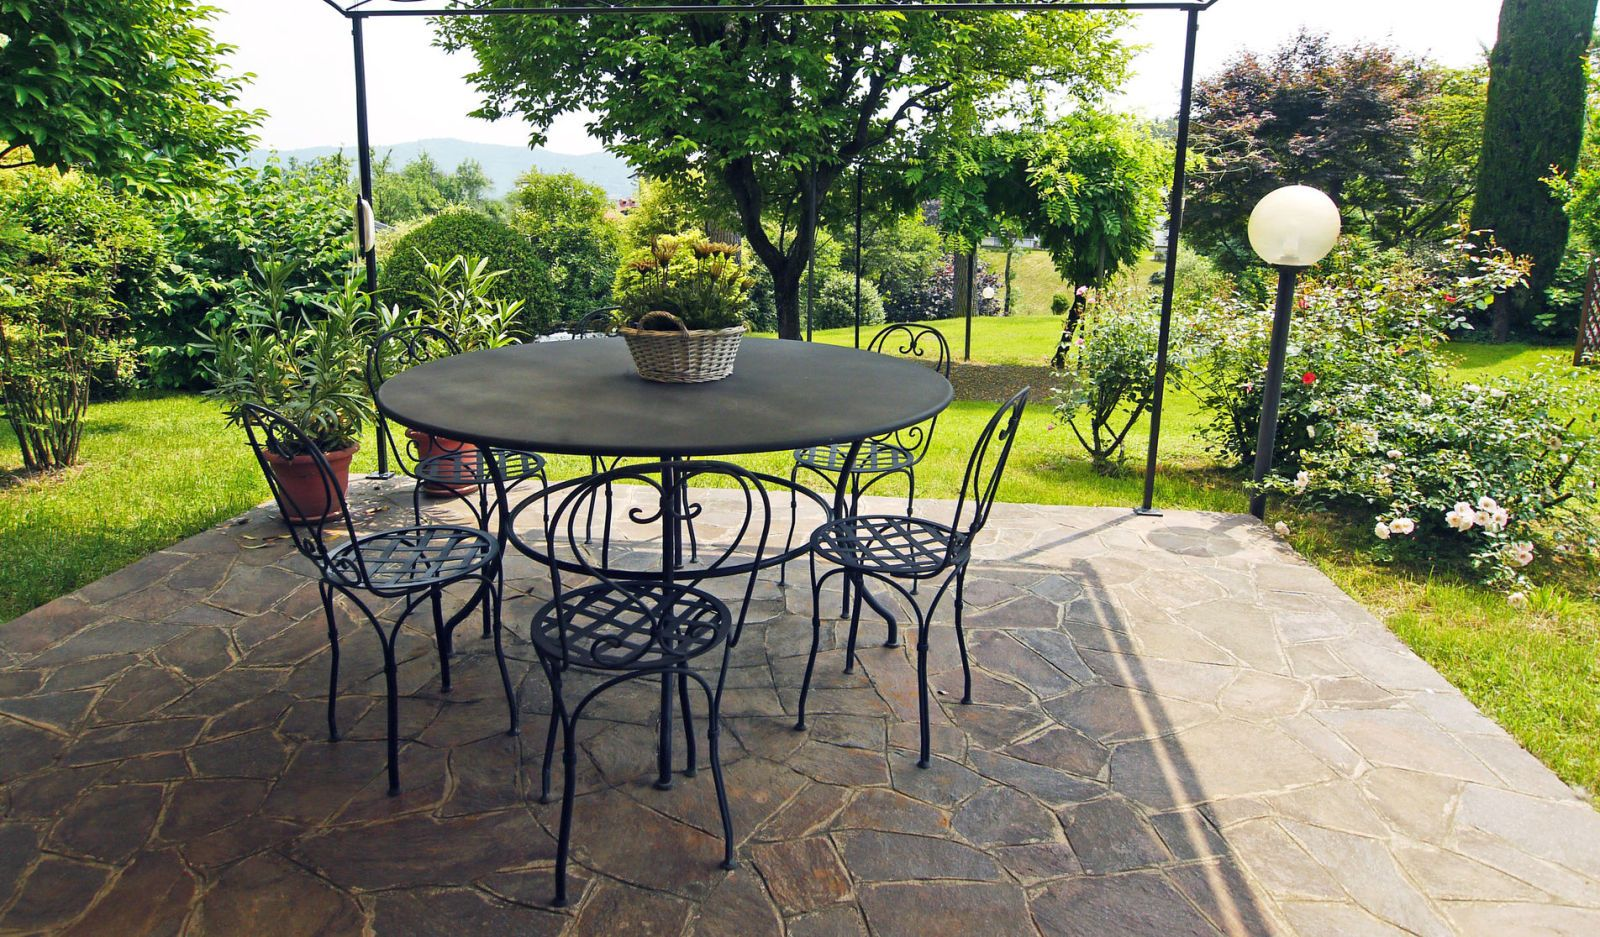 Covered Patio With View On Garden: Cosy Garden Corner With Round Wrought  Iron Table And